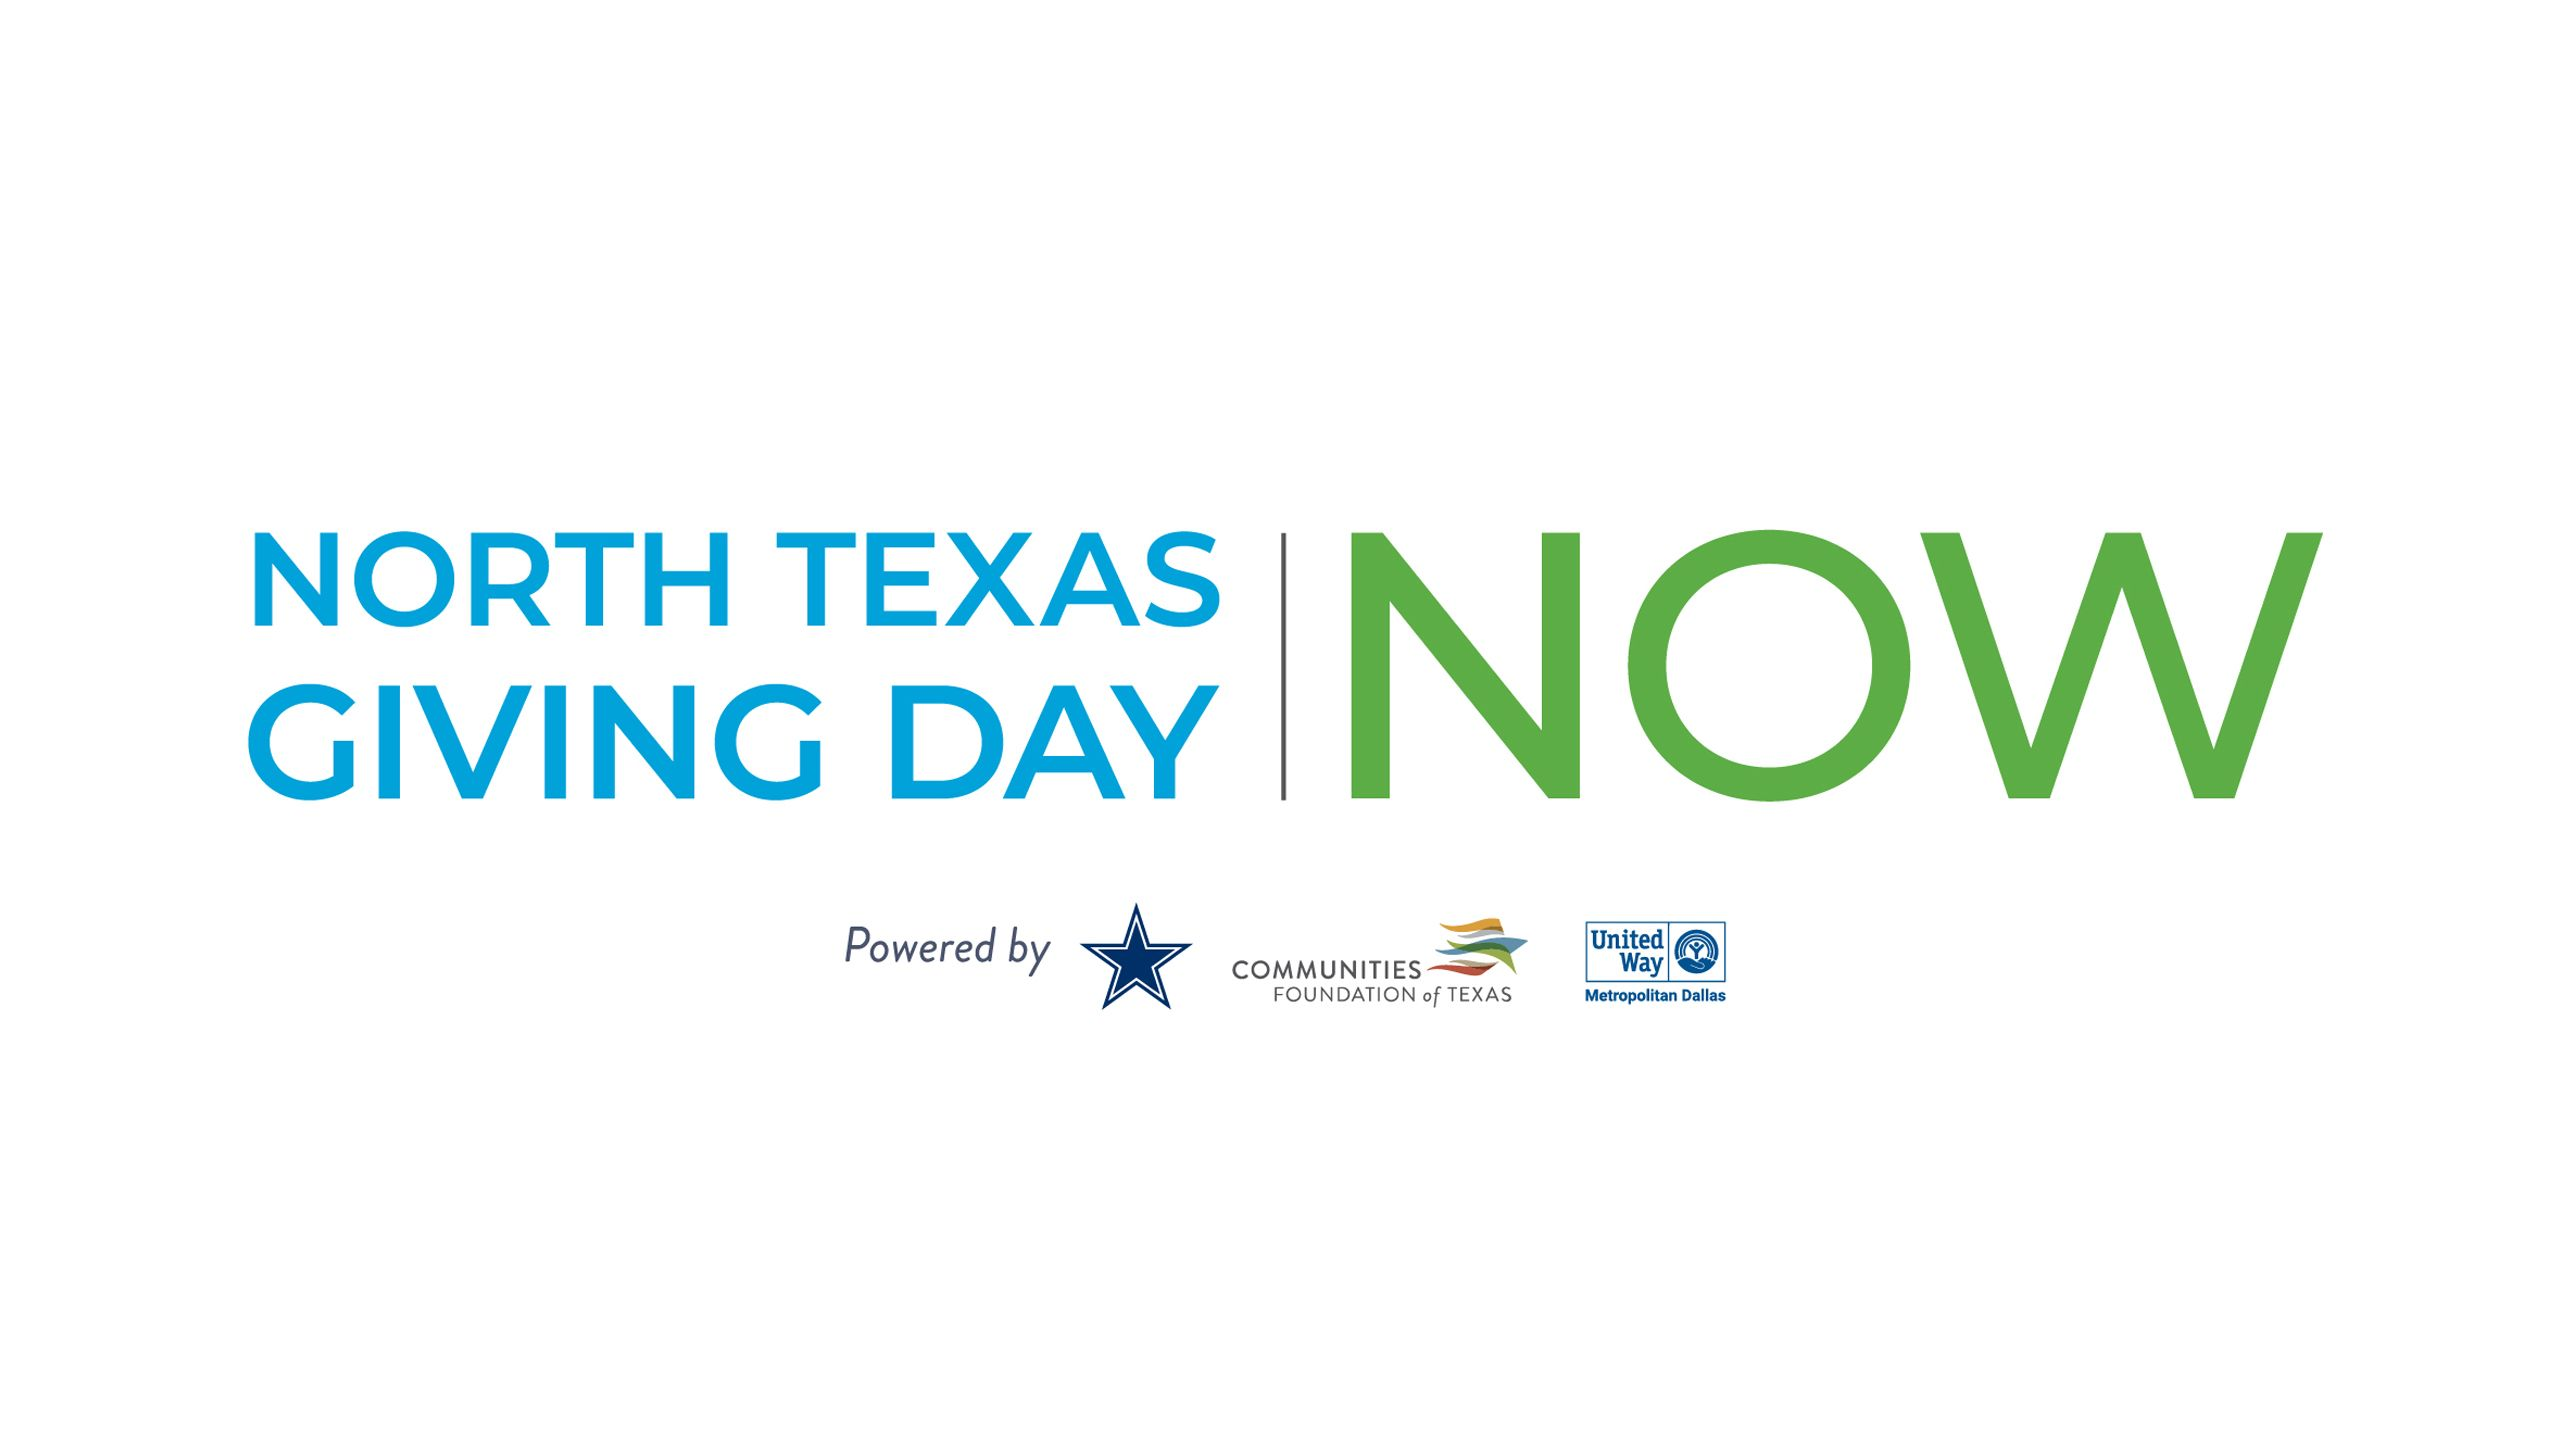 Dallas Cowboys Help Power 'North Texas Giving Tuesday Now' Effort